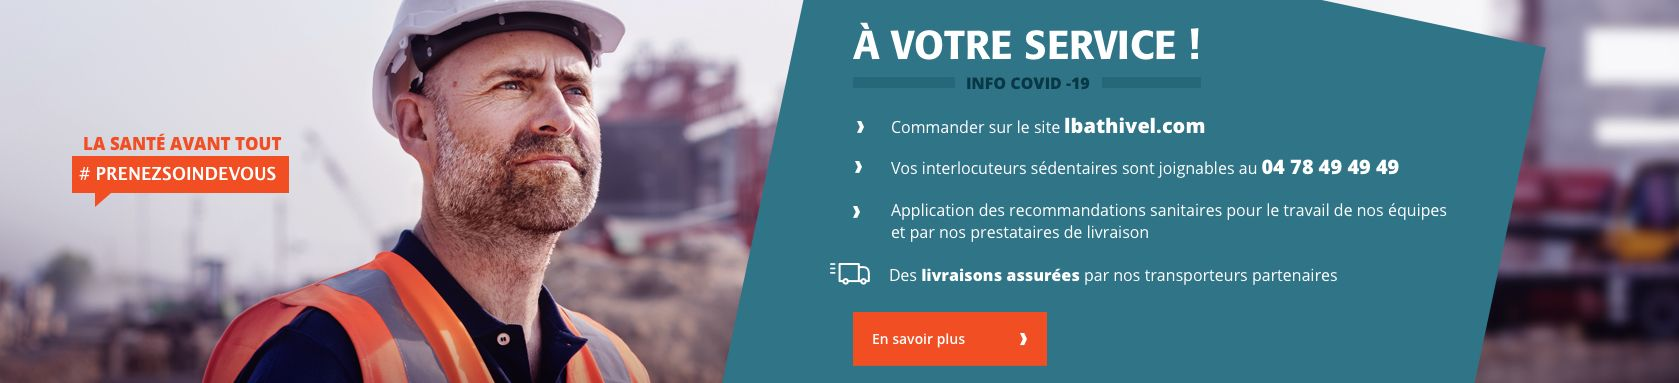 Information Foussier Covid-19